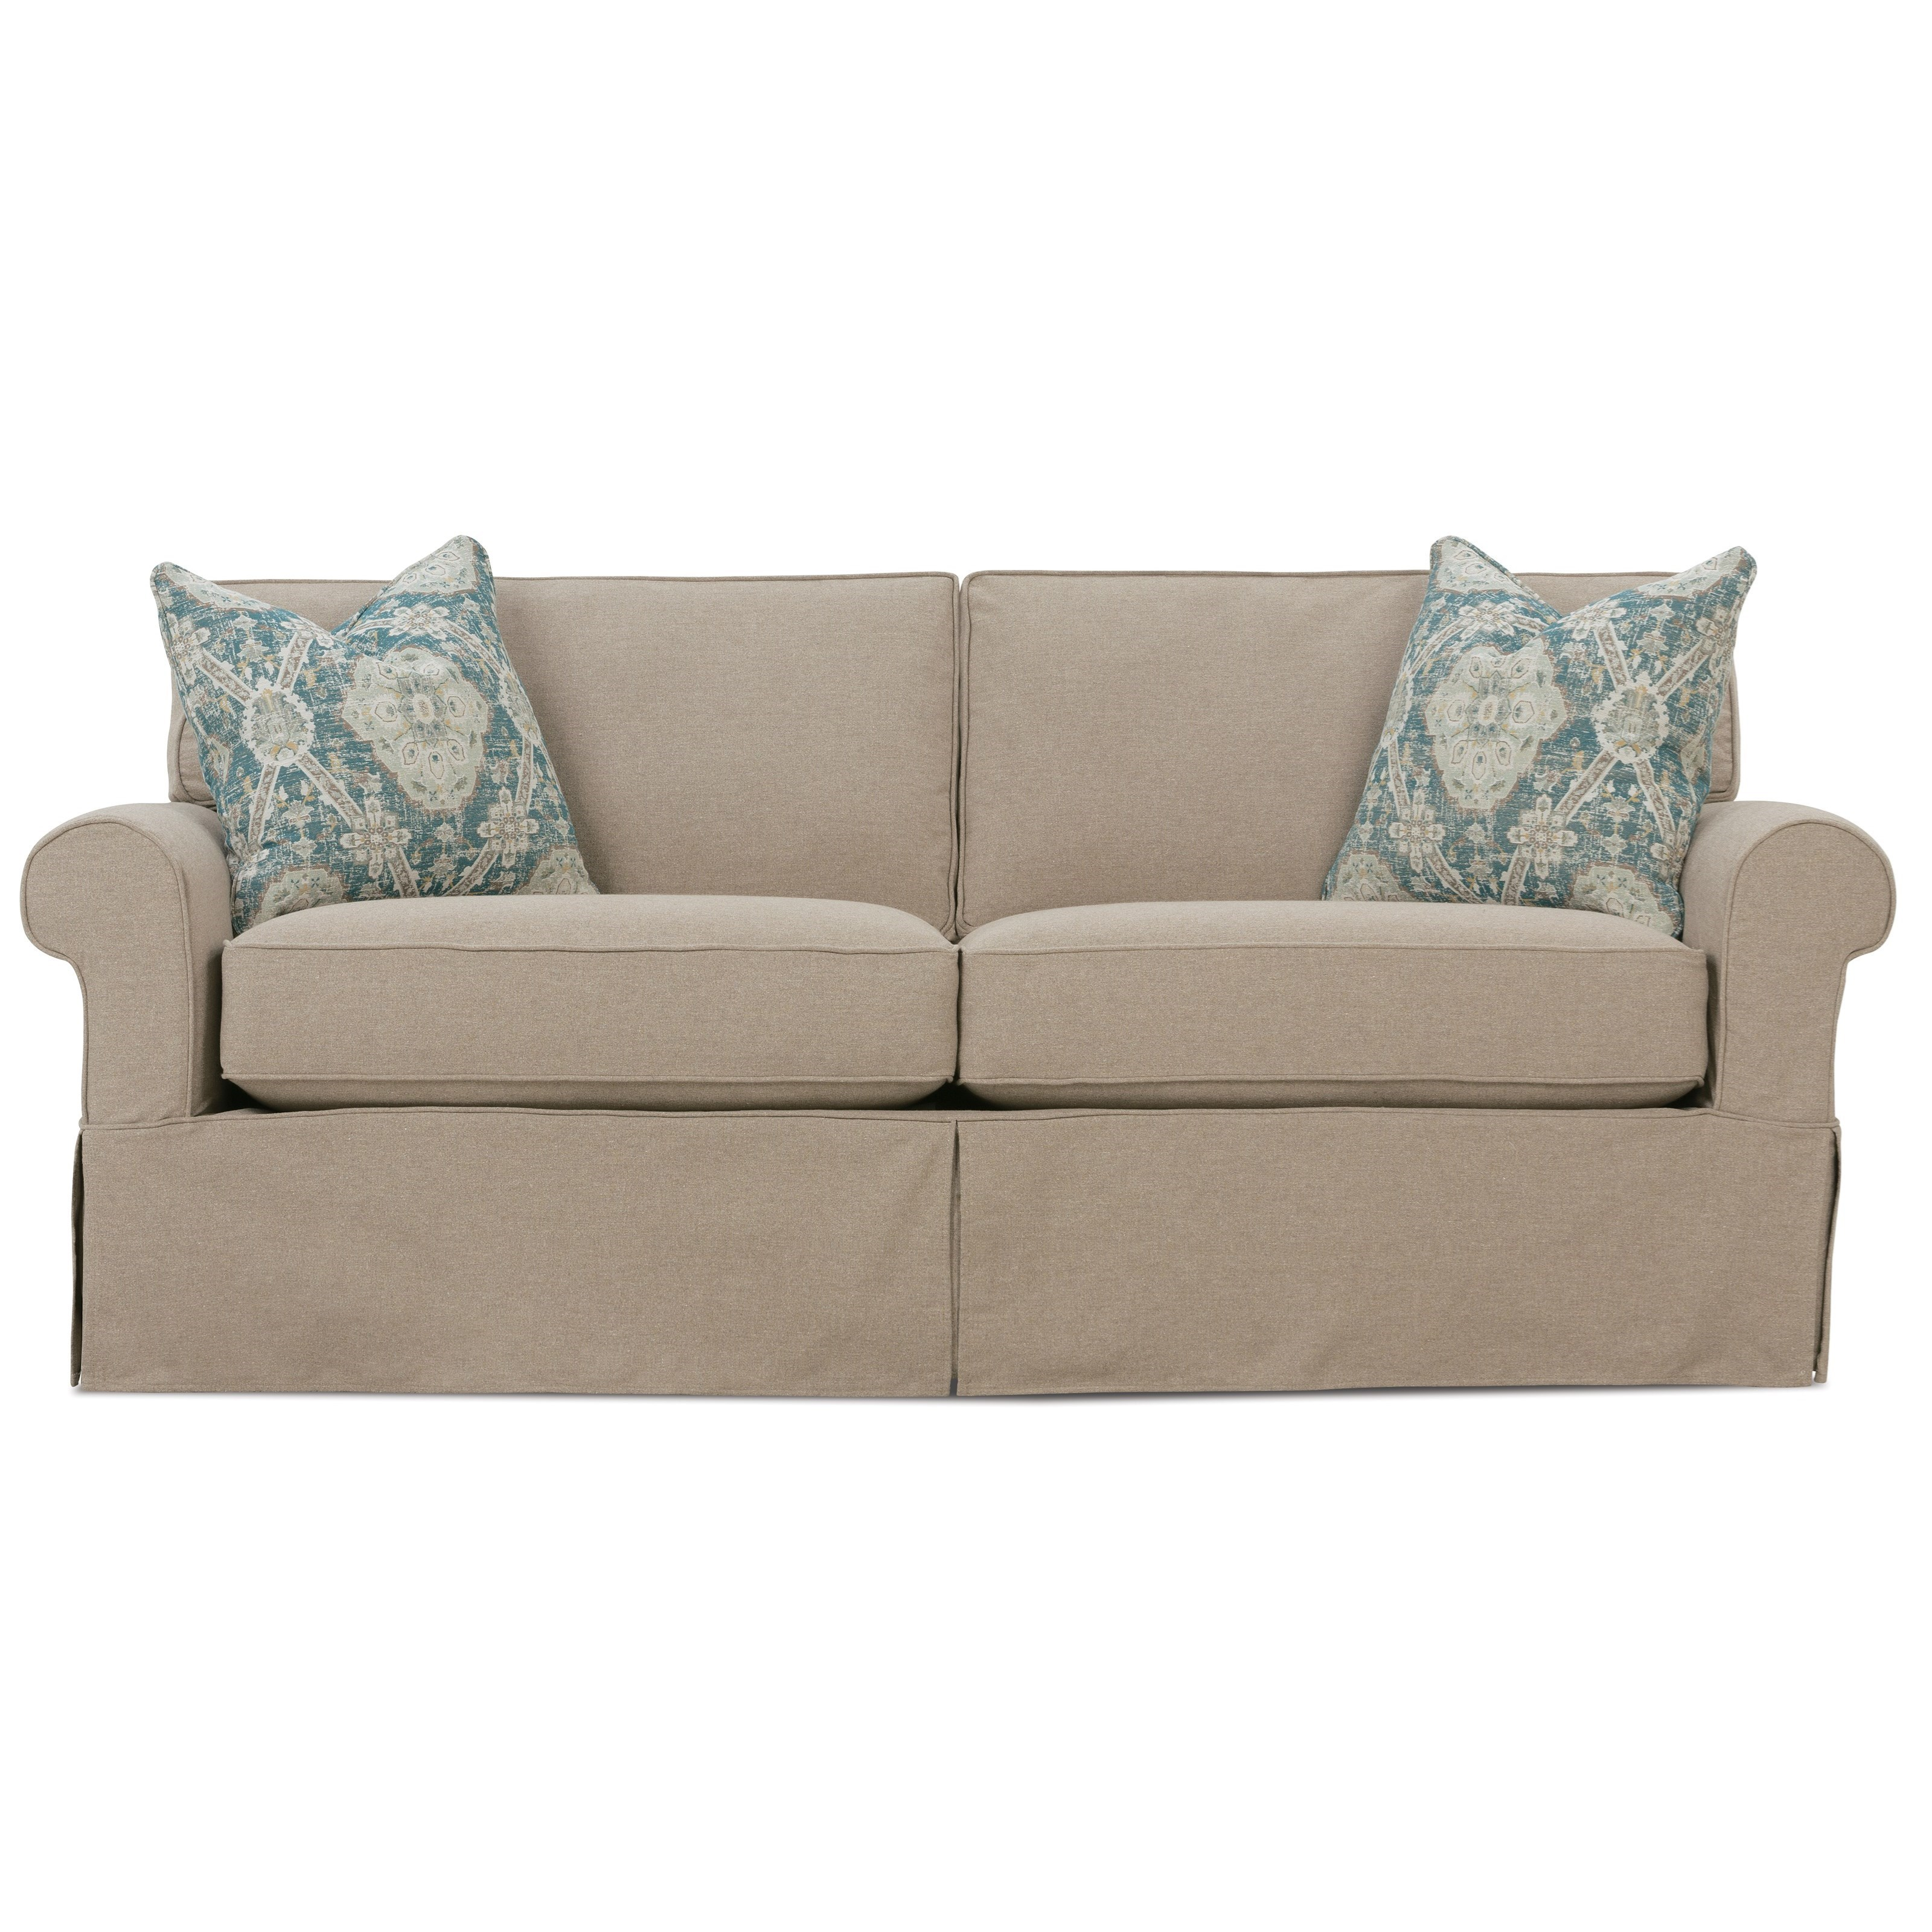 Nantucket  2-Seat Queen Sofa Sleeper by Rowe at Baer's Furniture